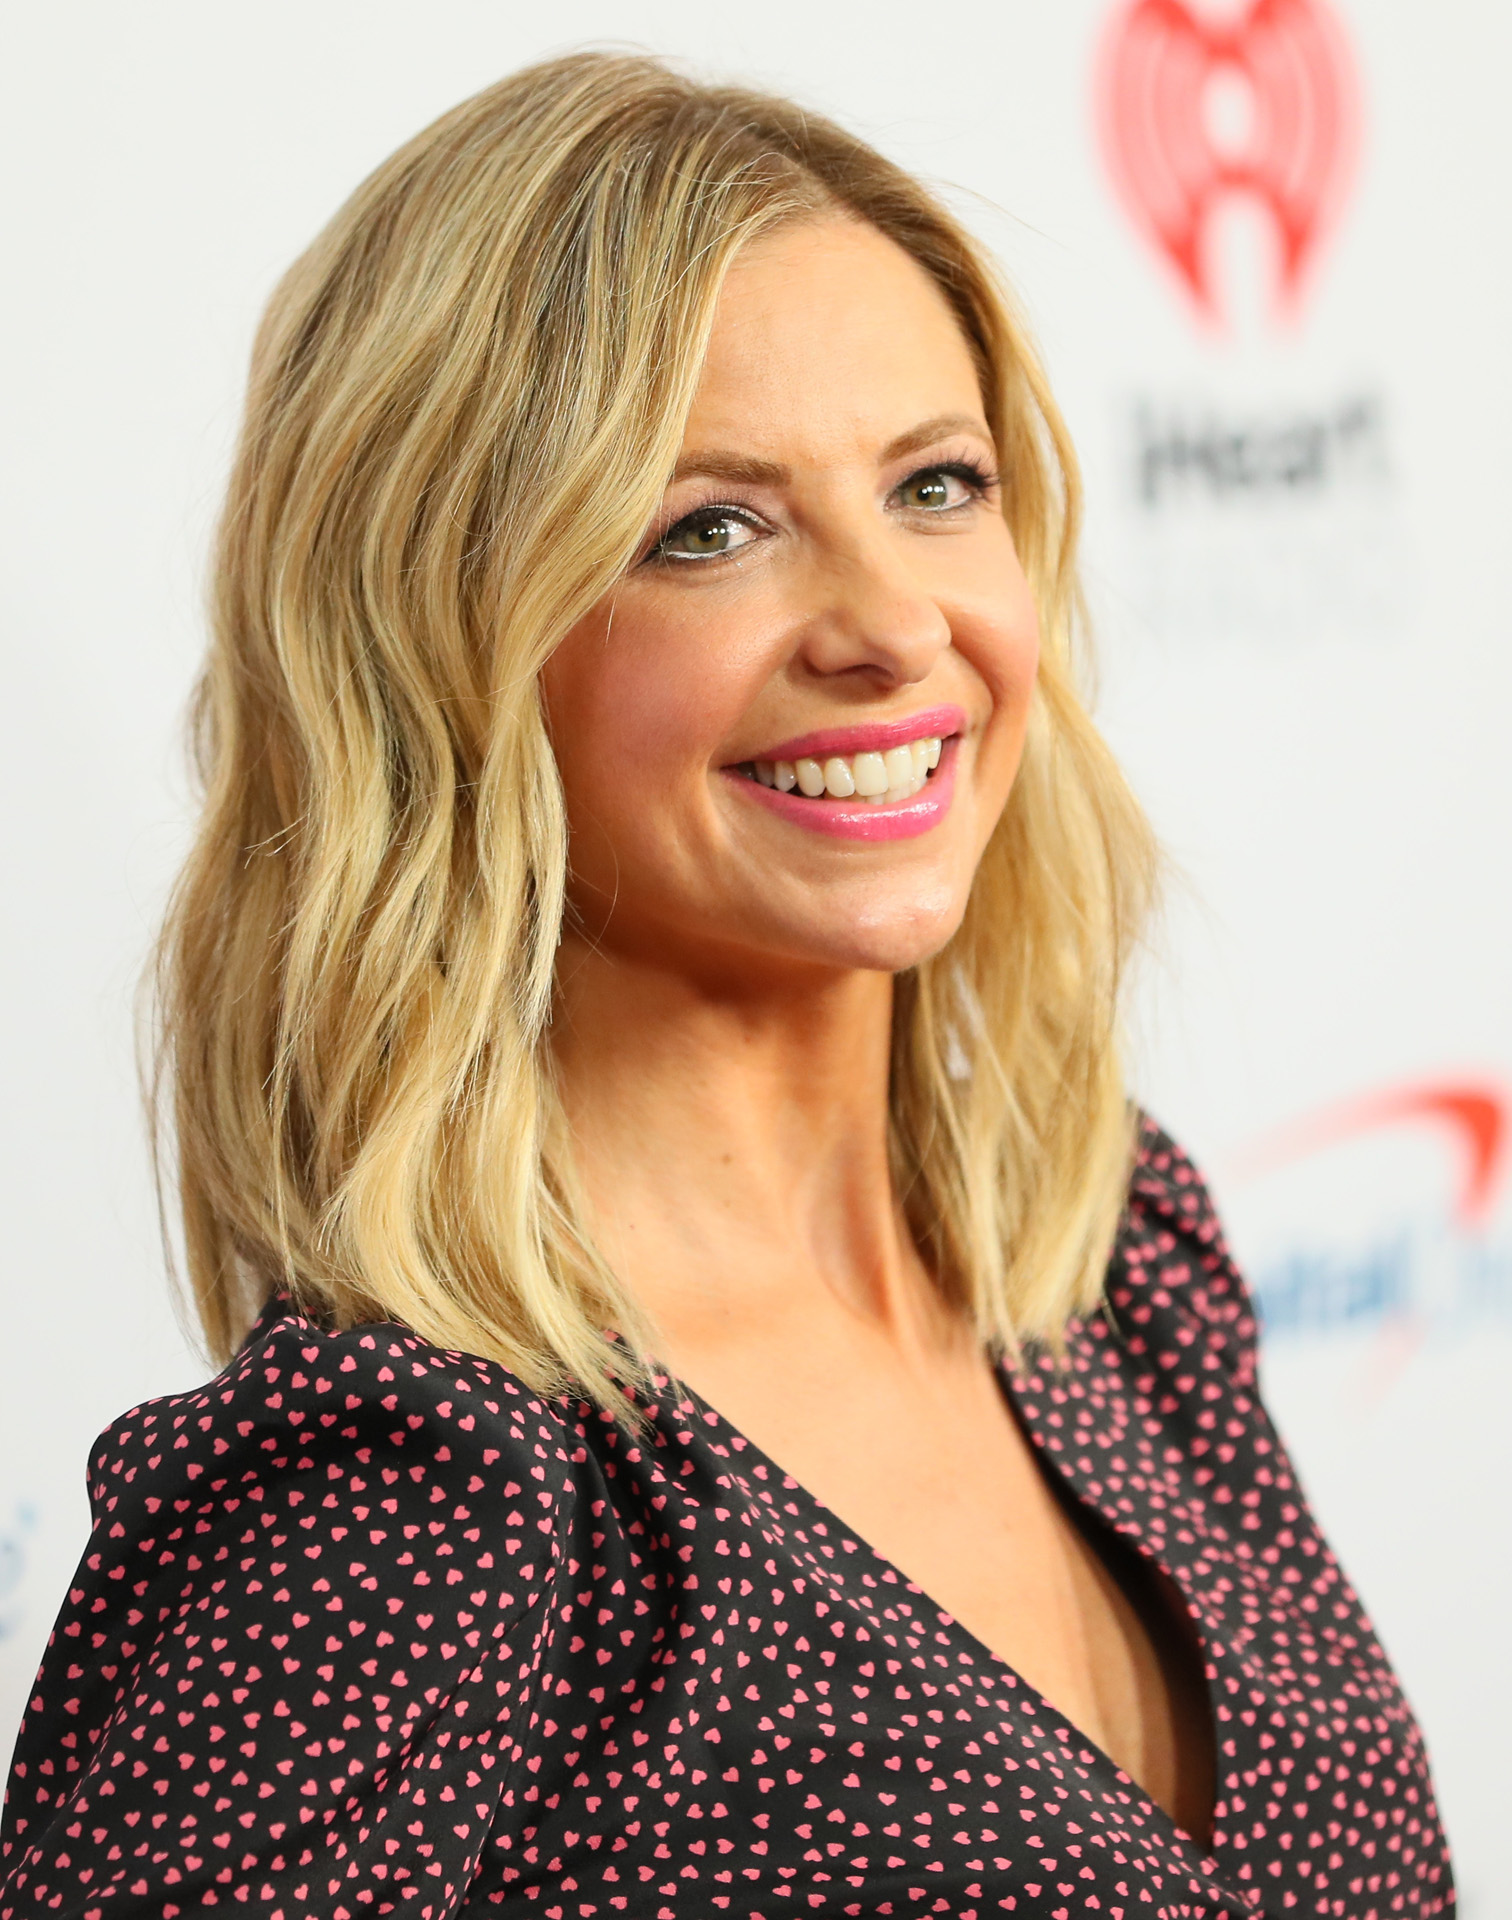 Sarah Michelle Gellar attends the KIIS FM's Jingle Ball 2019 Presented By Capital One at the Forum on December 06, 2019 in Inglewood, California.